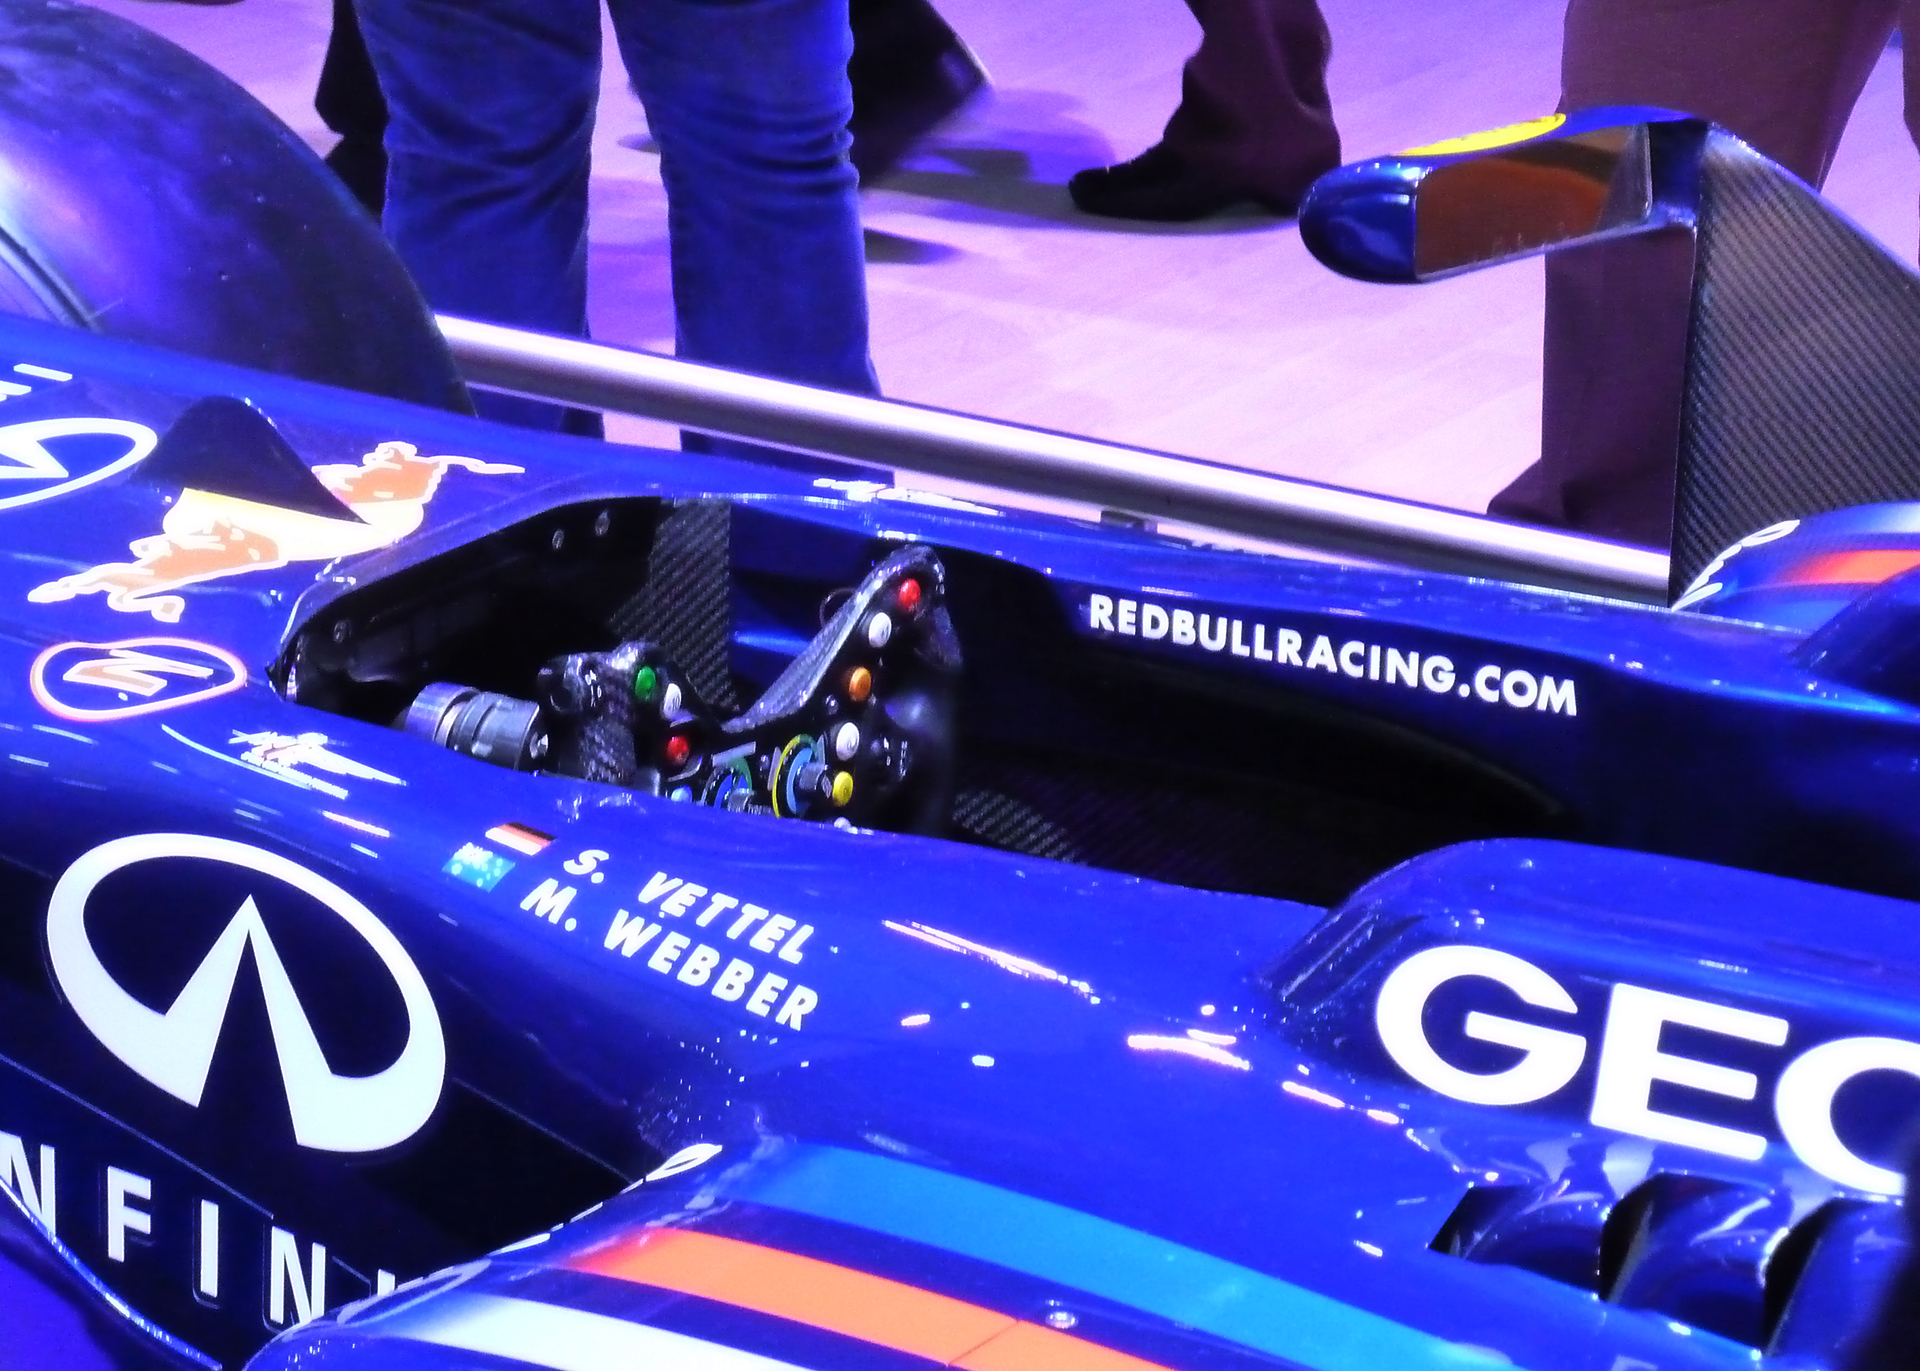 Red-Bull-Racing-F1-2011-racing-wheel-preview-stand-2012-Mondial-Automobile-photo-elj-dm